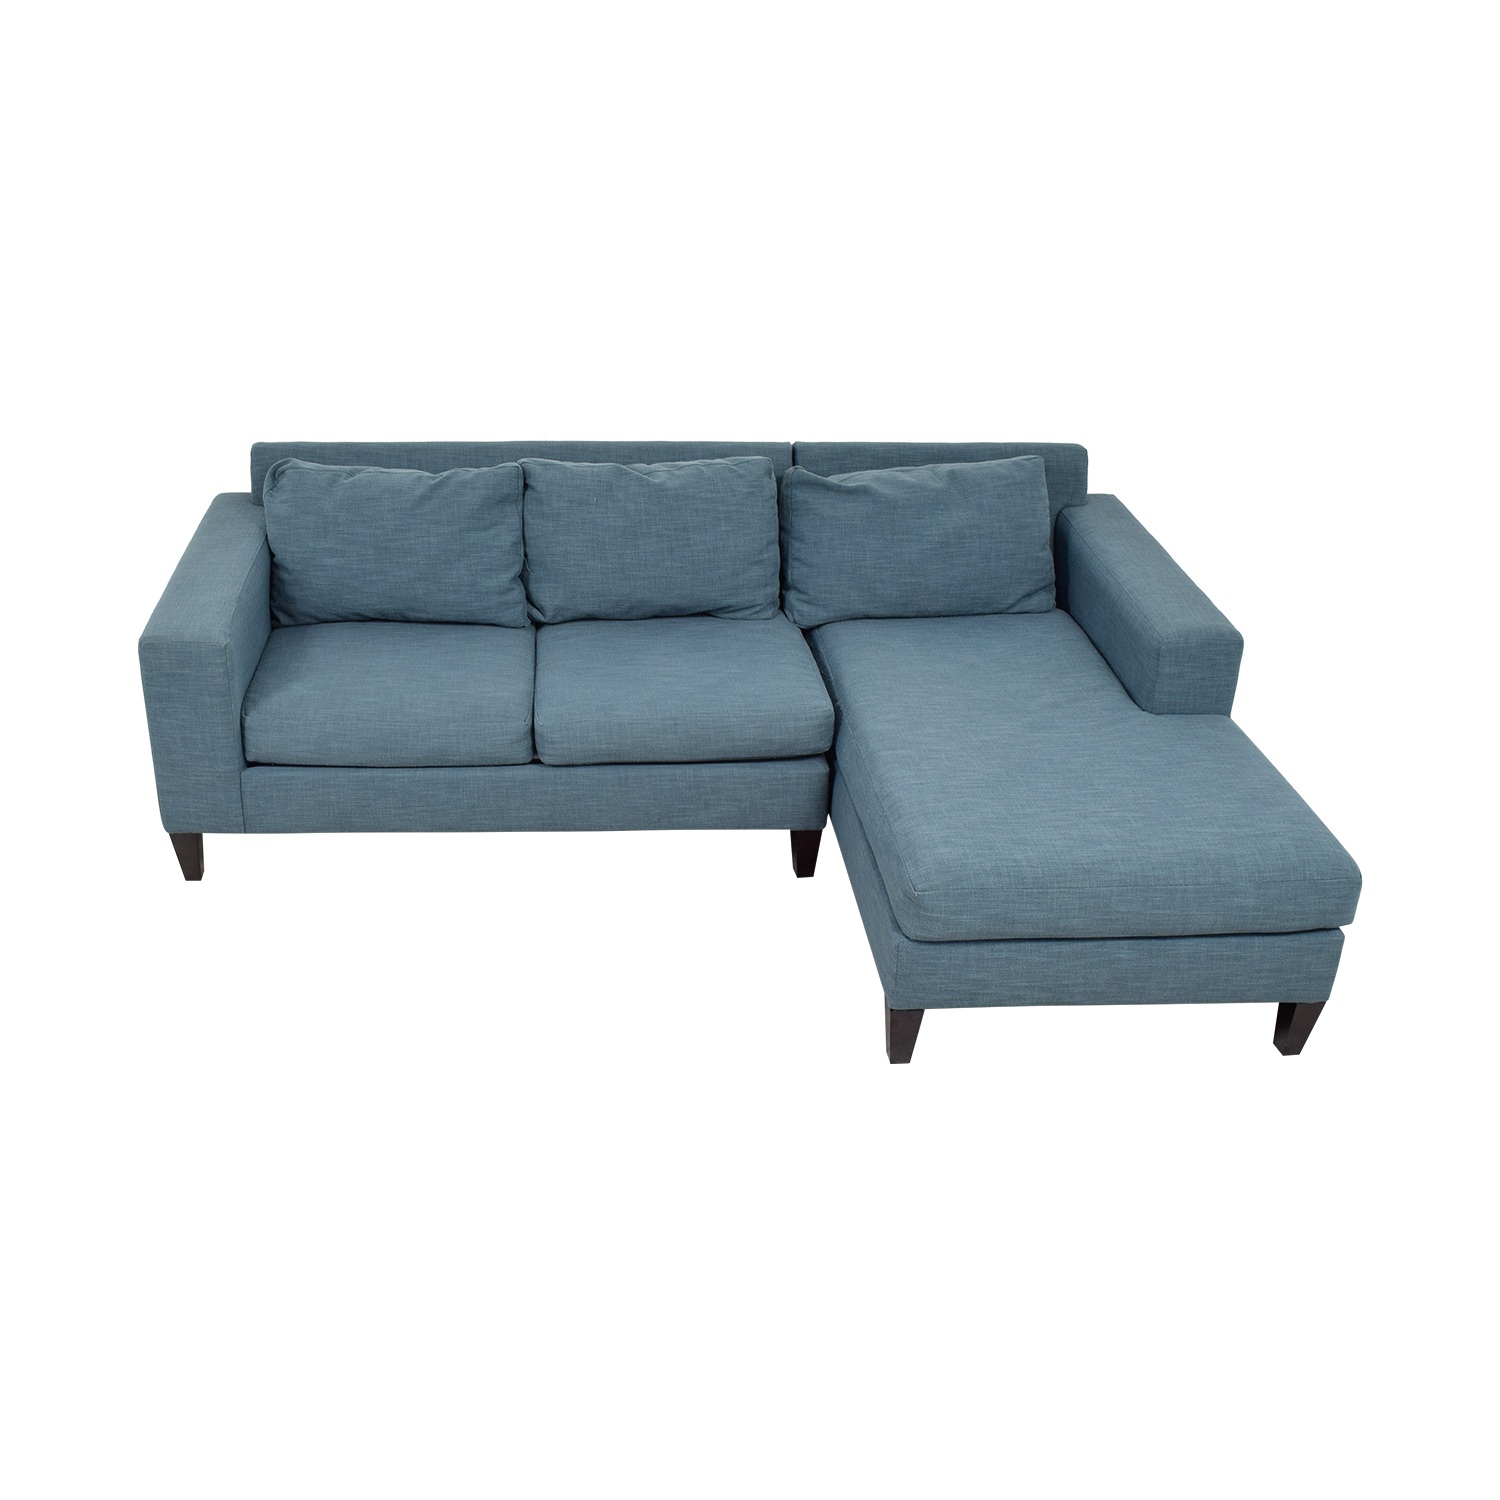 32% OFF - West Elm West Elm York Blue Chaise Sectional / Sofas Chaise Longue York on chaise recliner chair, chaise sofa sleeper, chaise furniture,